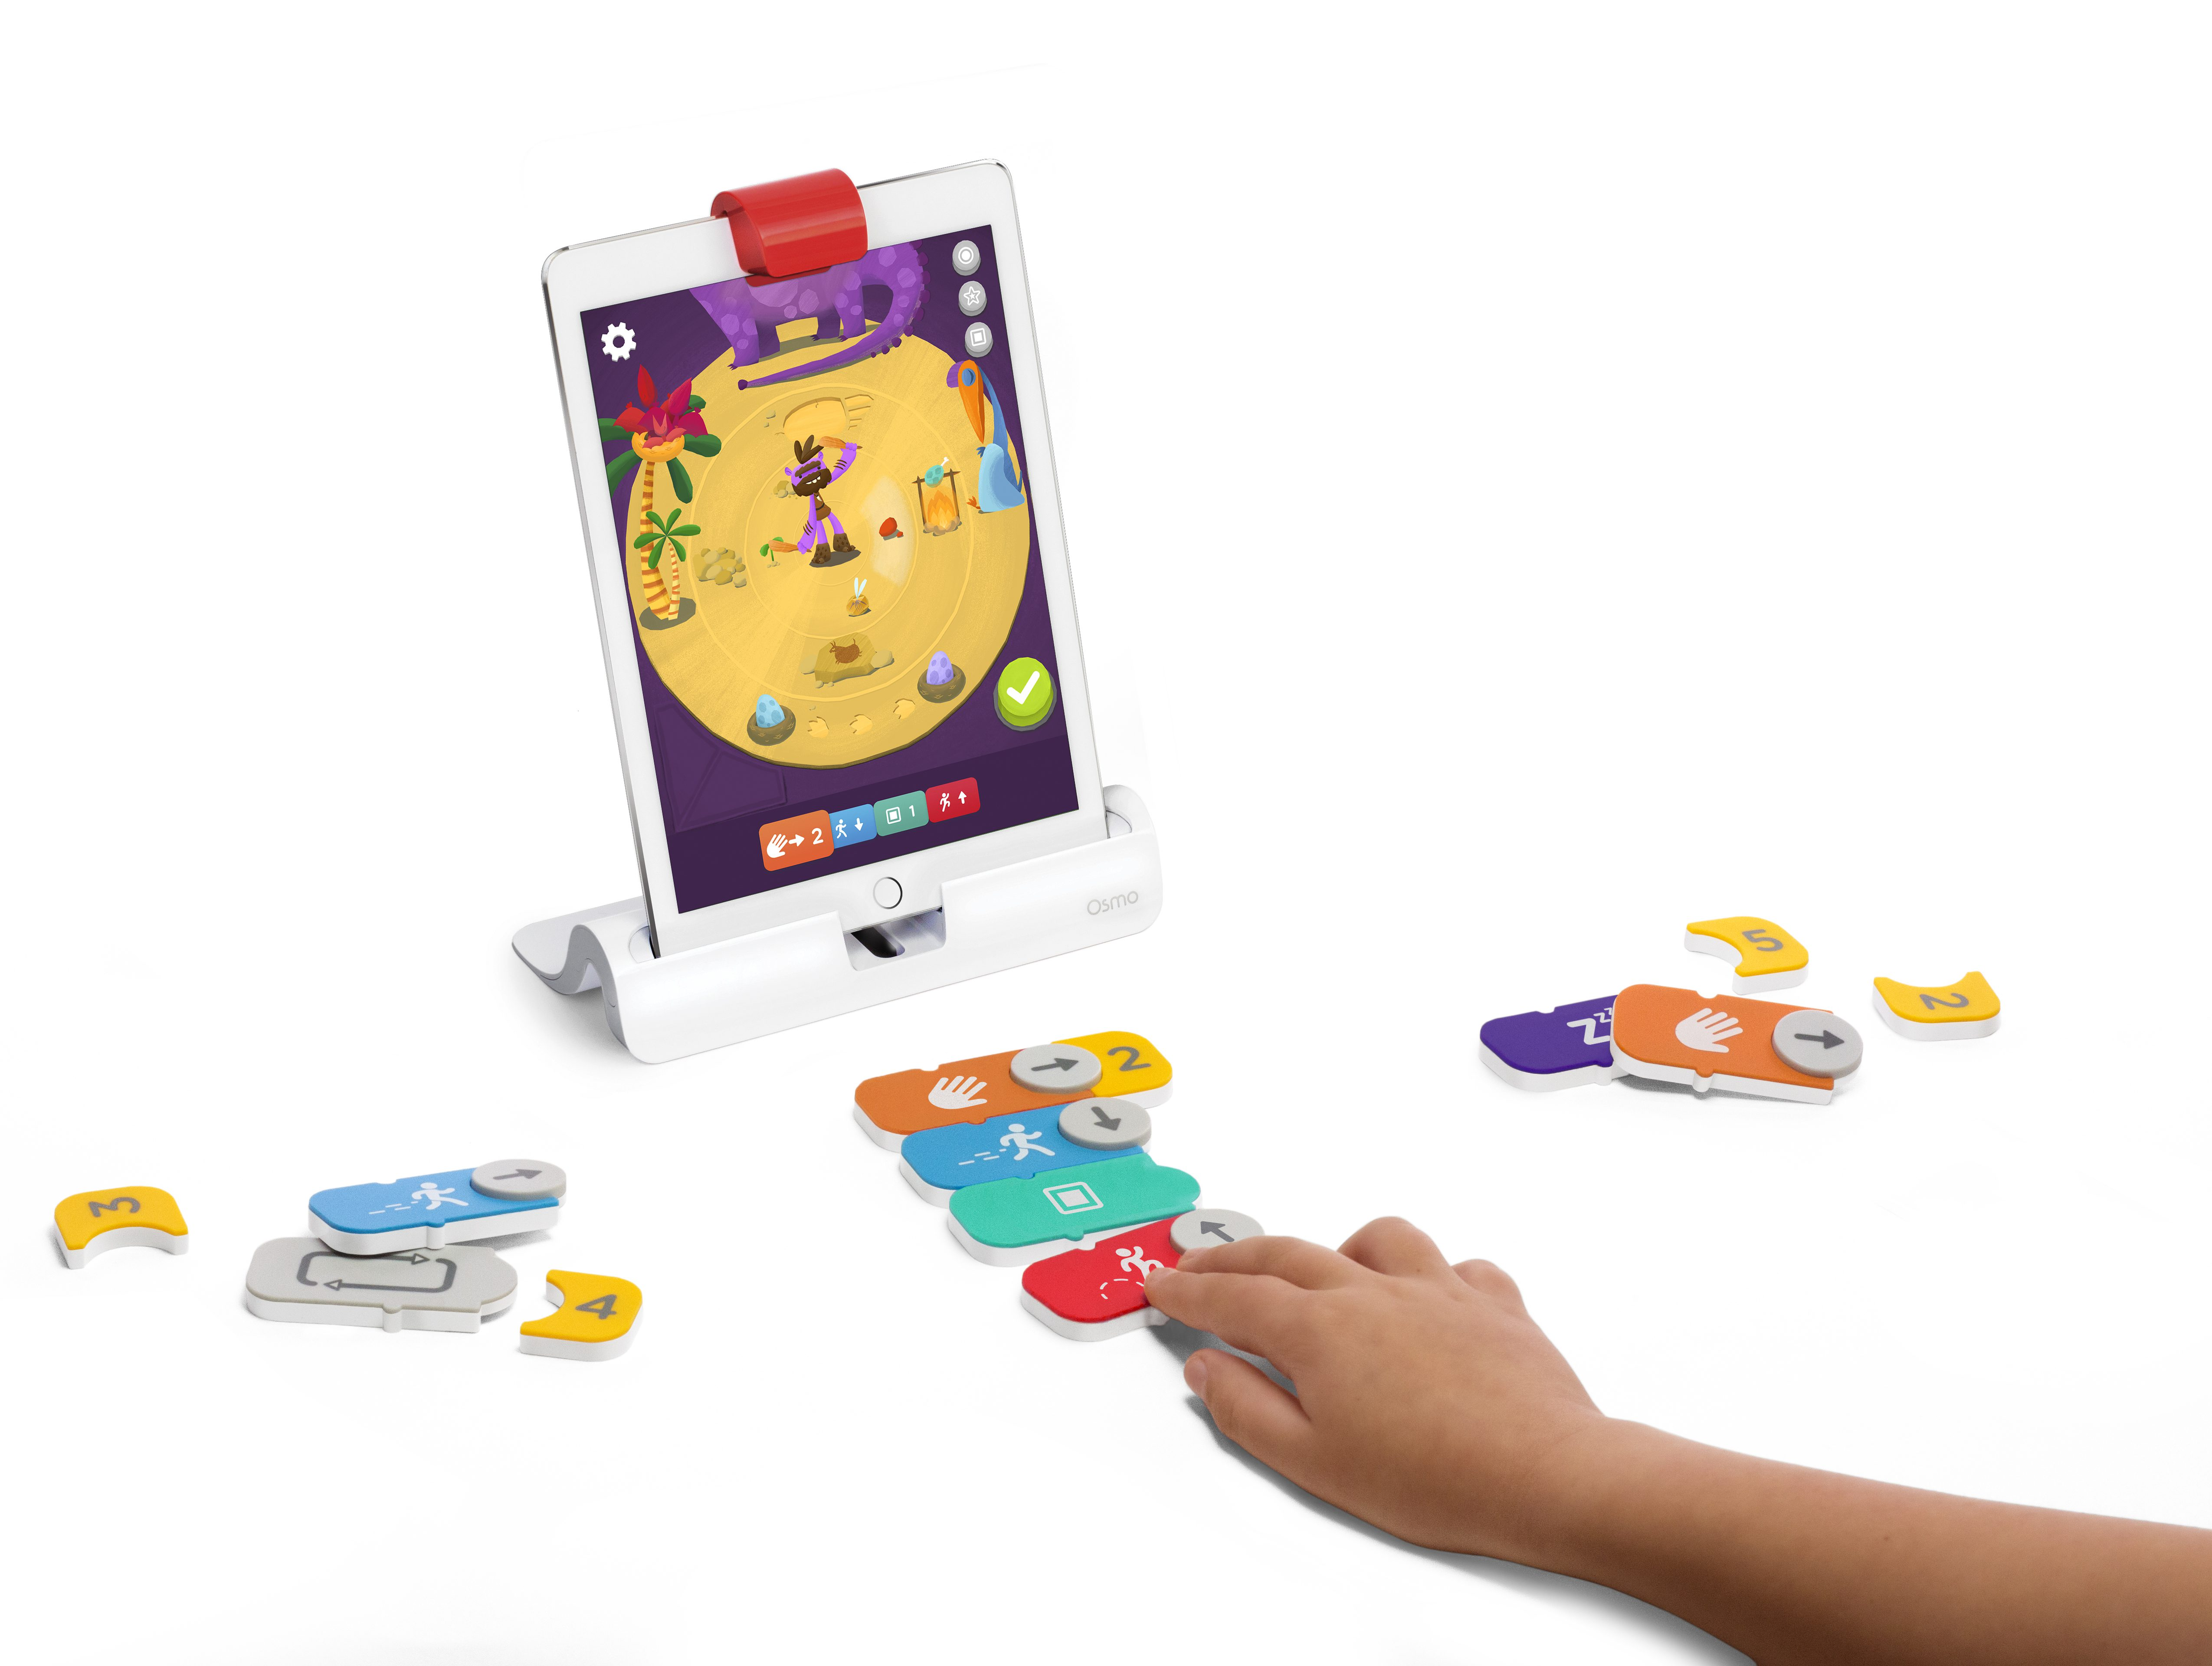 Osmo Coding Jam is a unique rhythm game that uses real blocks to teach kids how to code